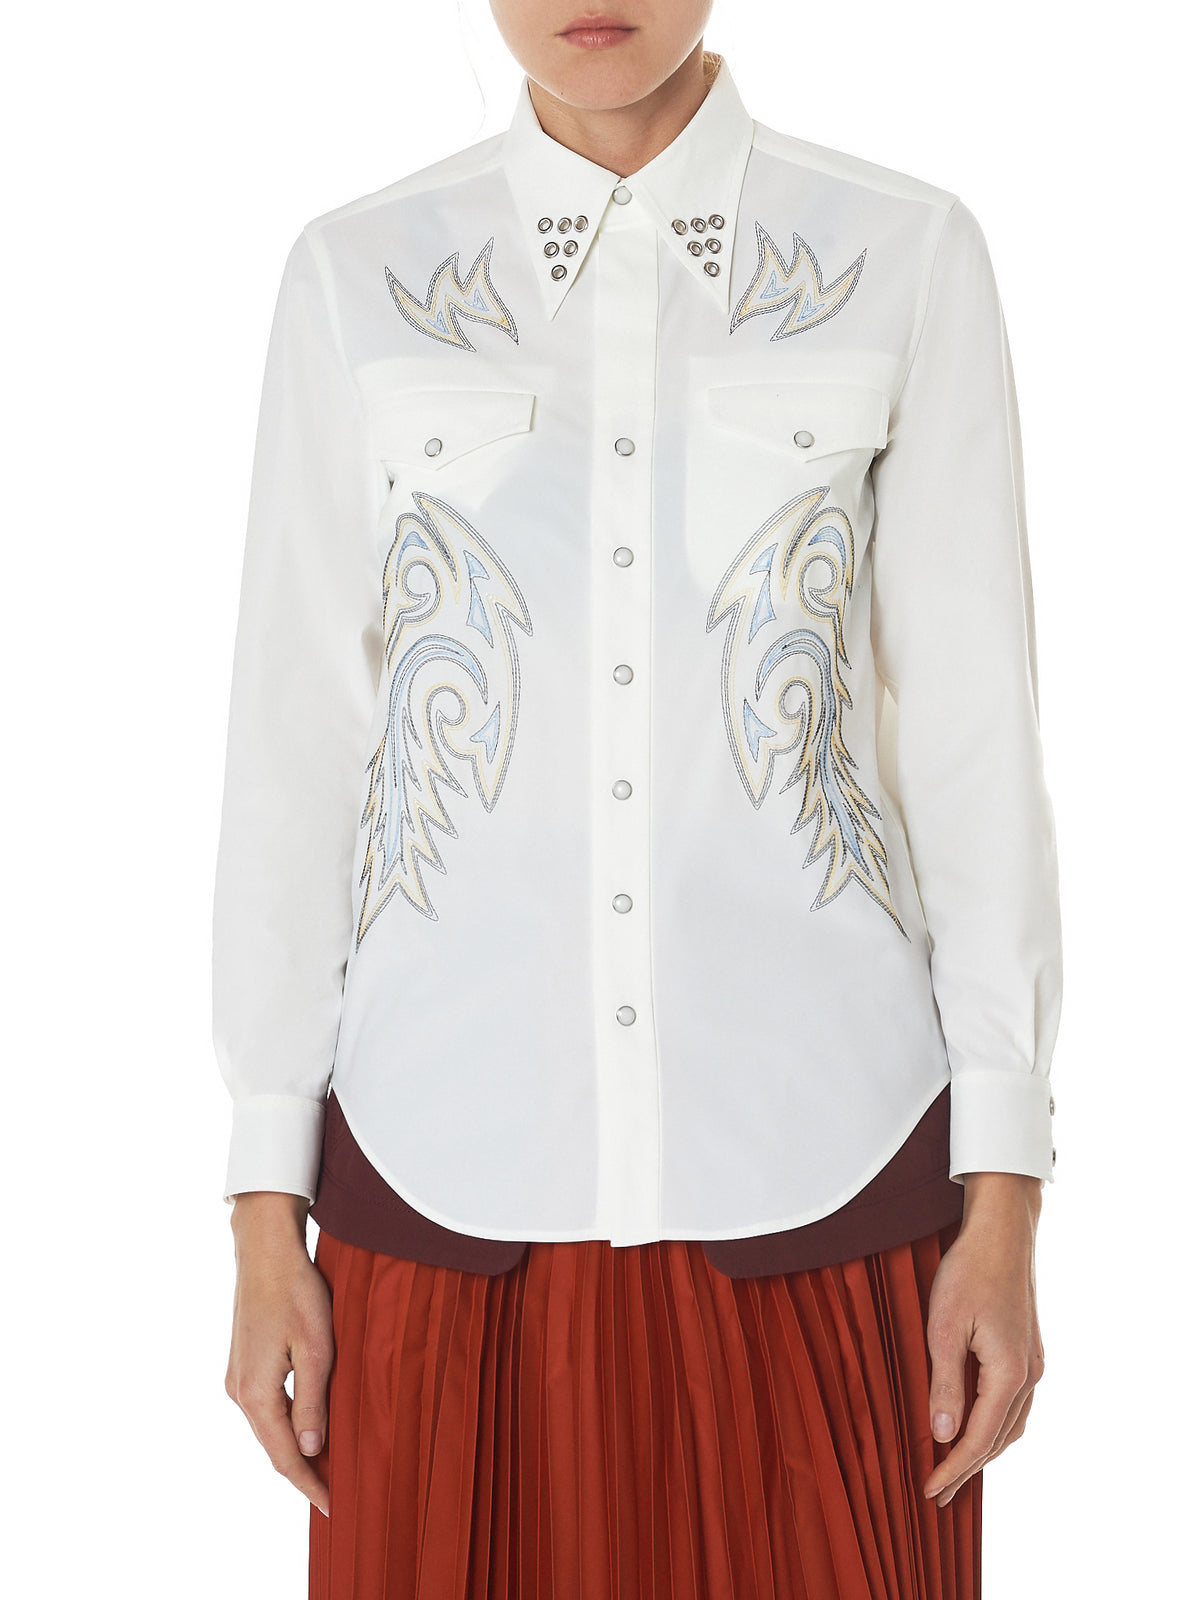 Toga Archives Embroidery Shirt - Hlorenzo Front